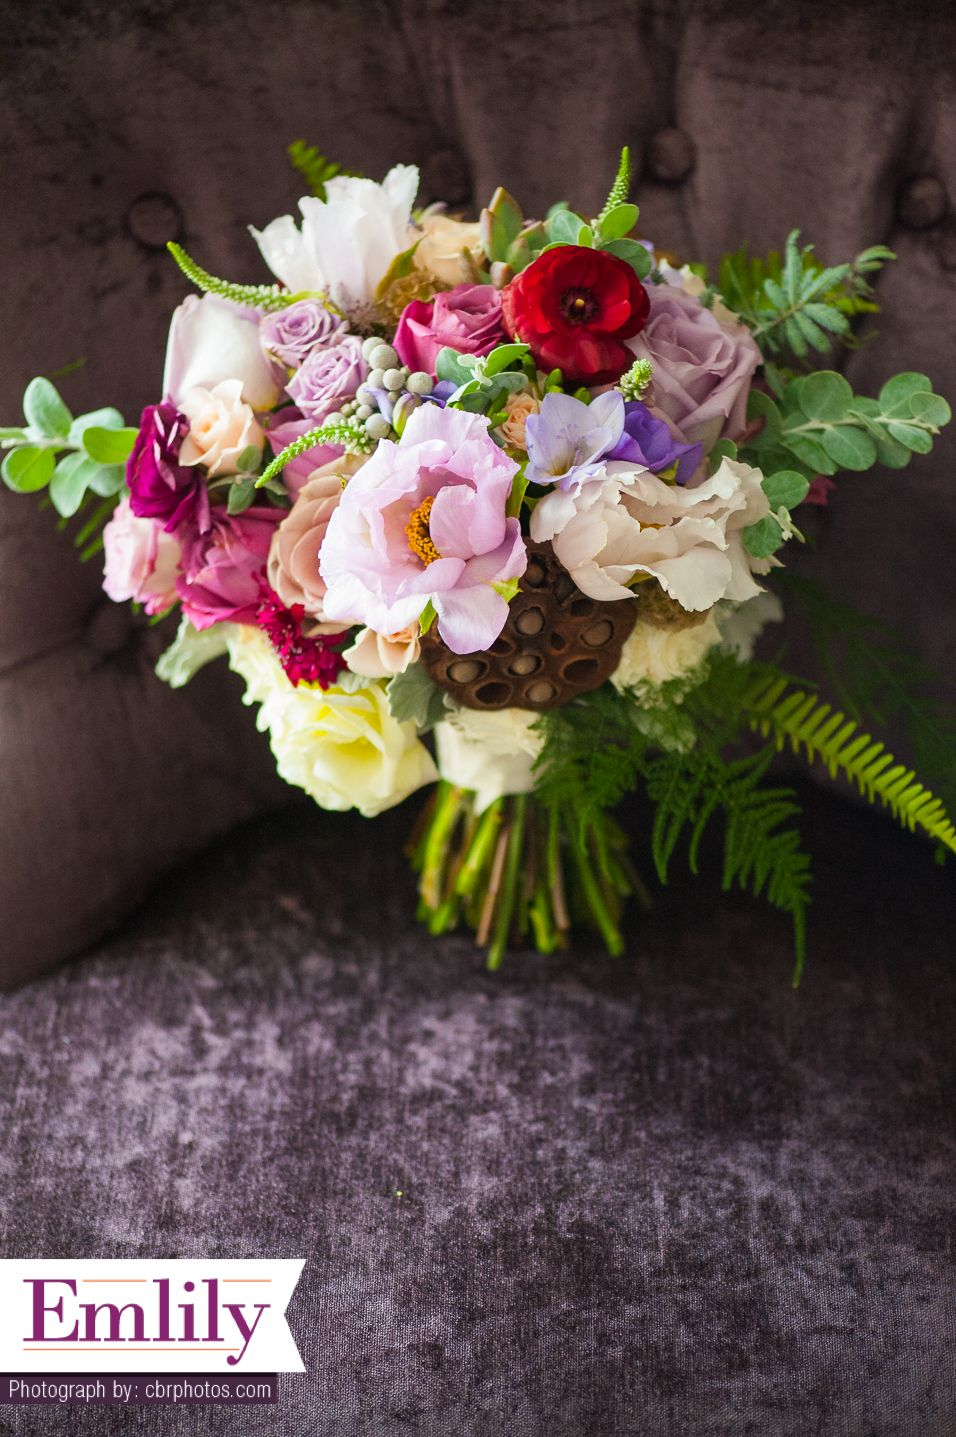 Woodland wedding flowers in camarillo emlily floral lavender woodland wedding flowers in camarillo emlily floral lavender plum and burgundy bridal dhlflorist Images